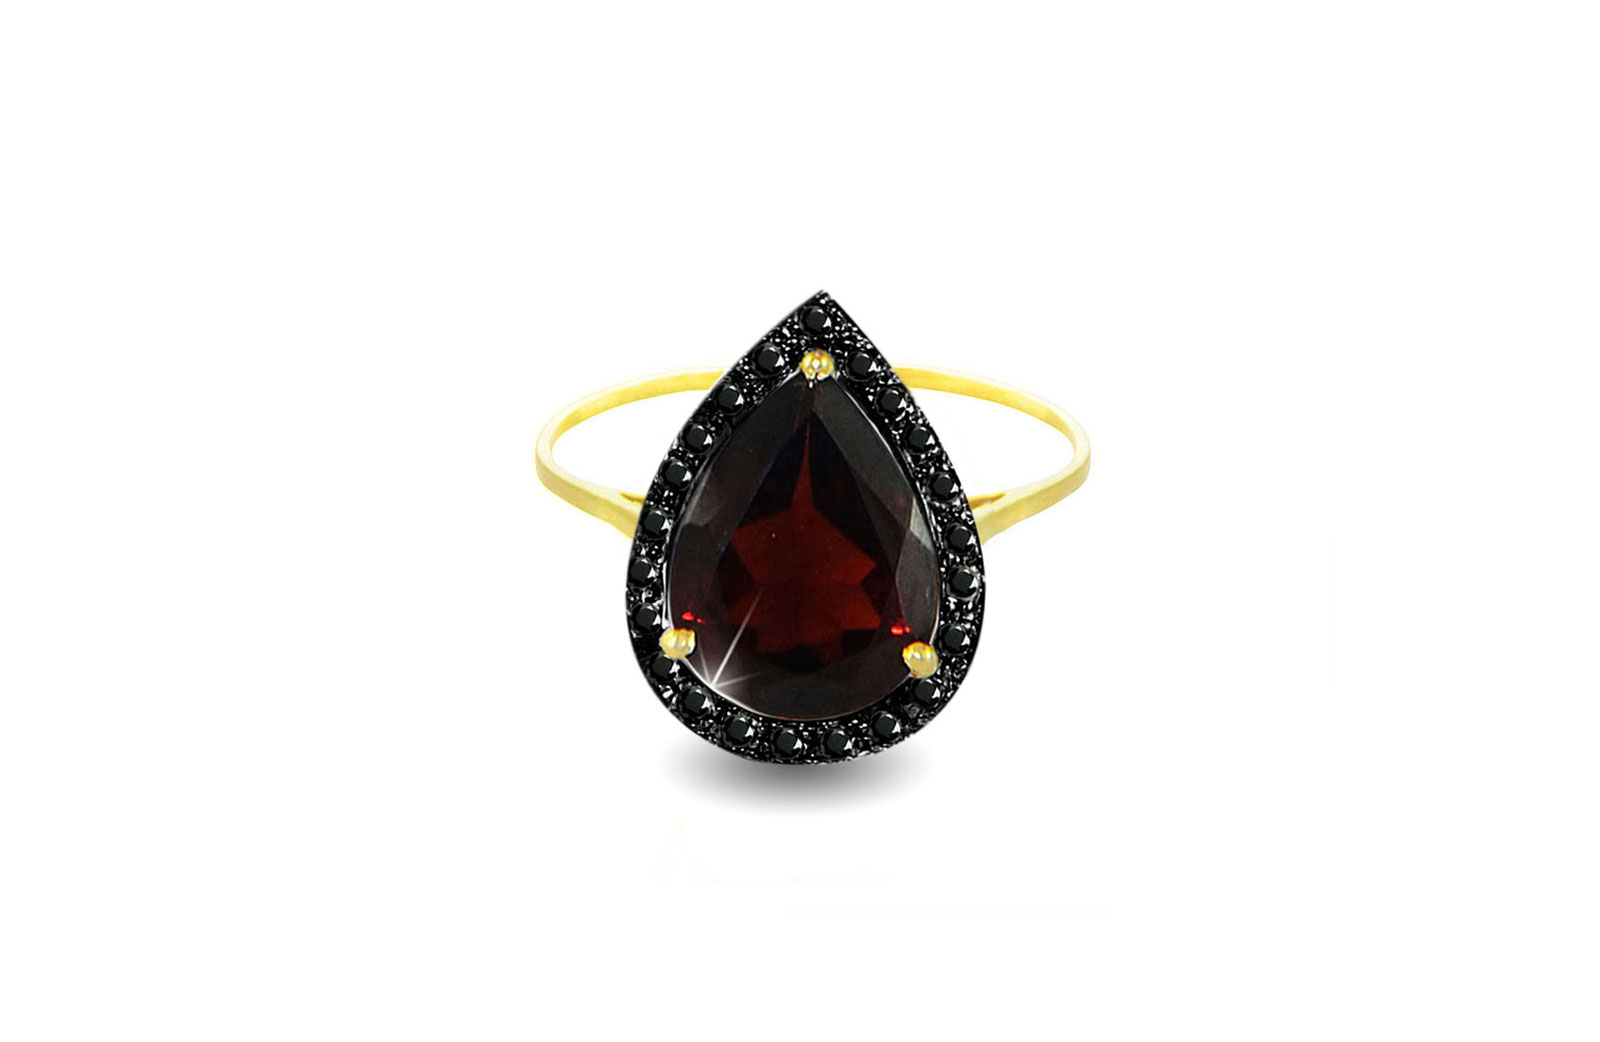 Vera Perla 18K Gold 0.12Ct Genuine Black Diamonds Garnet Ring